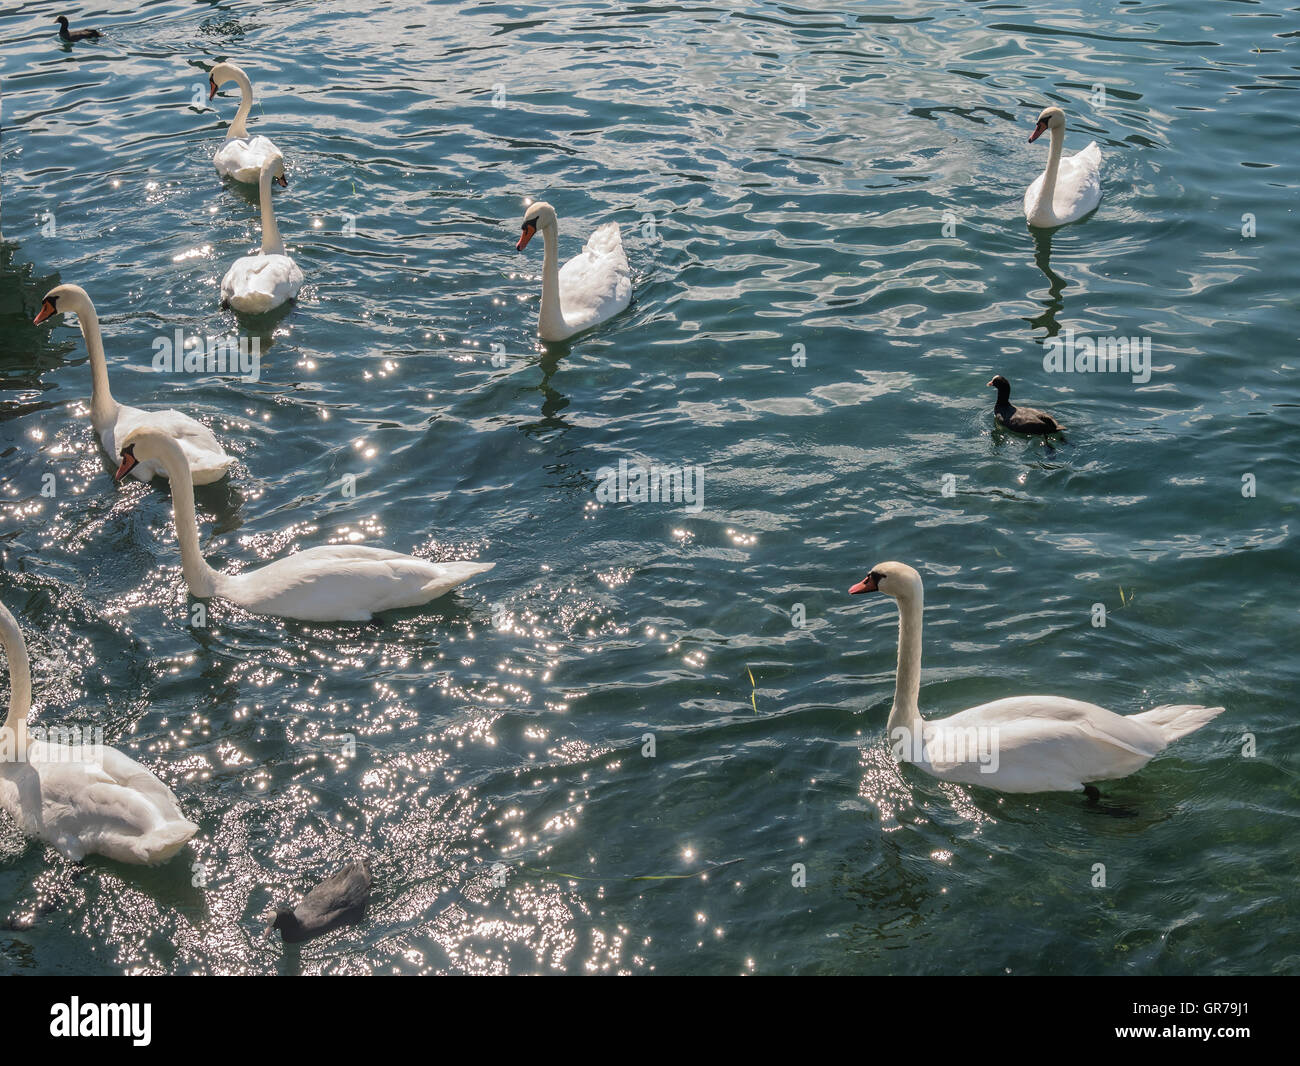 Swans at the lakeside of lake Iseo in Italy - Stock Image